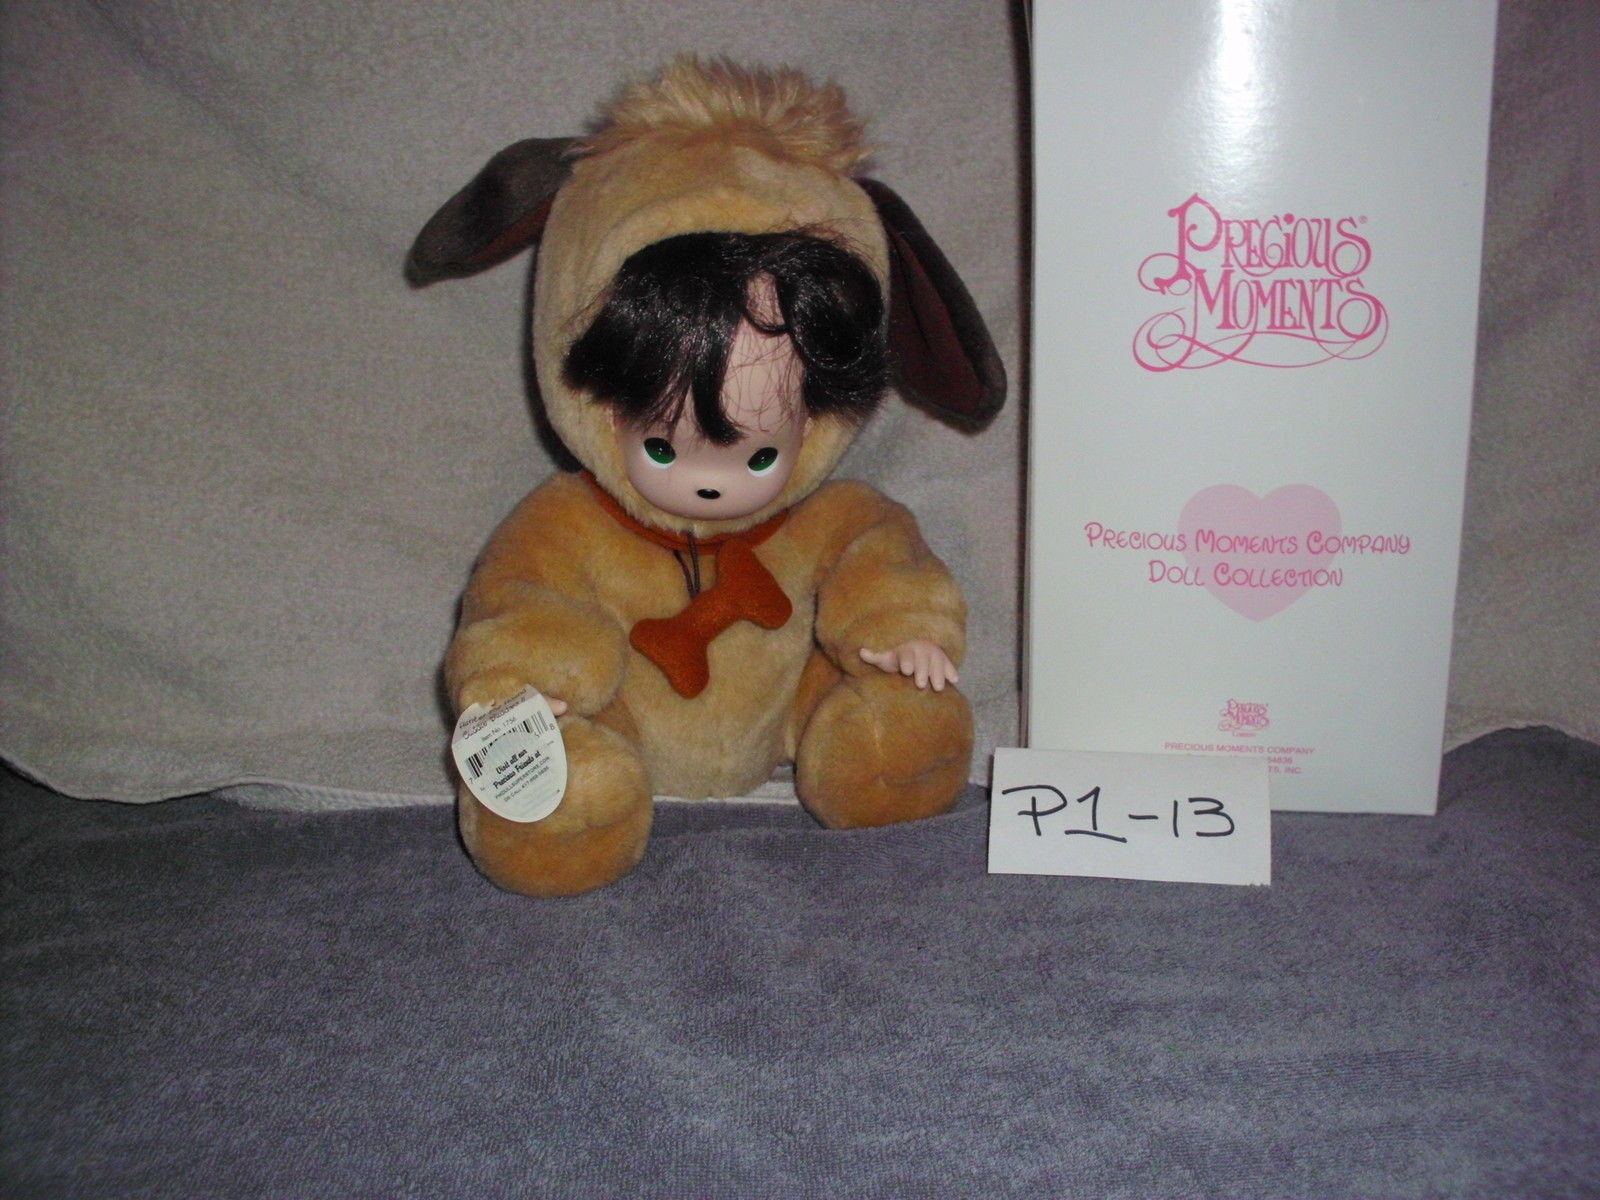 Precious Moment Company Doll Collection, Hunter the Hound, Cuddle Buddies II